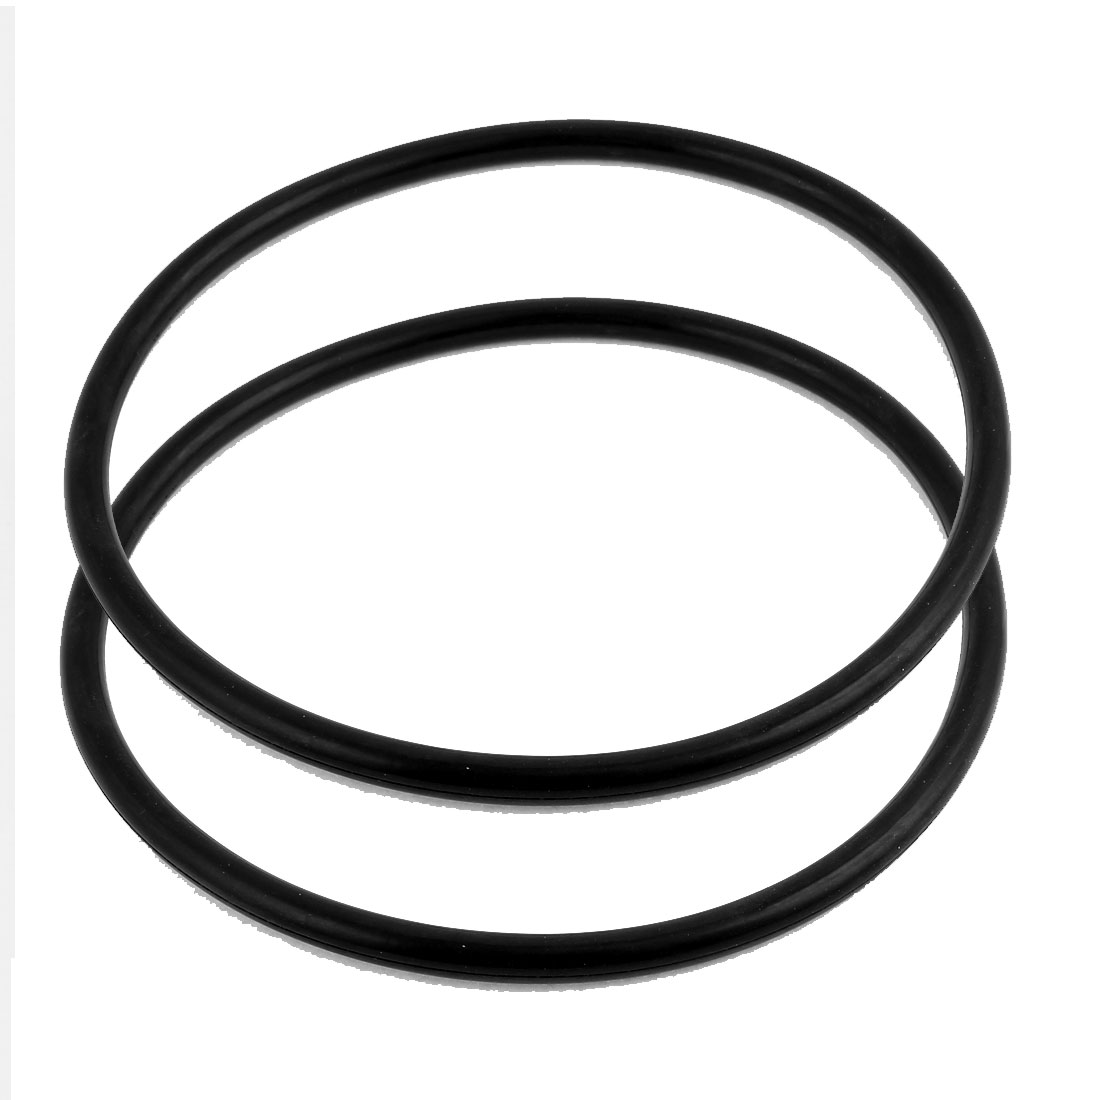 2Pcs Black Universal O-Ring 180mm x 8.6mm BUNA-N Material Oil Seal Washers Grommets